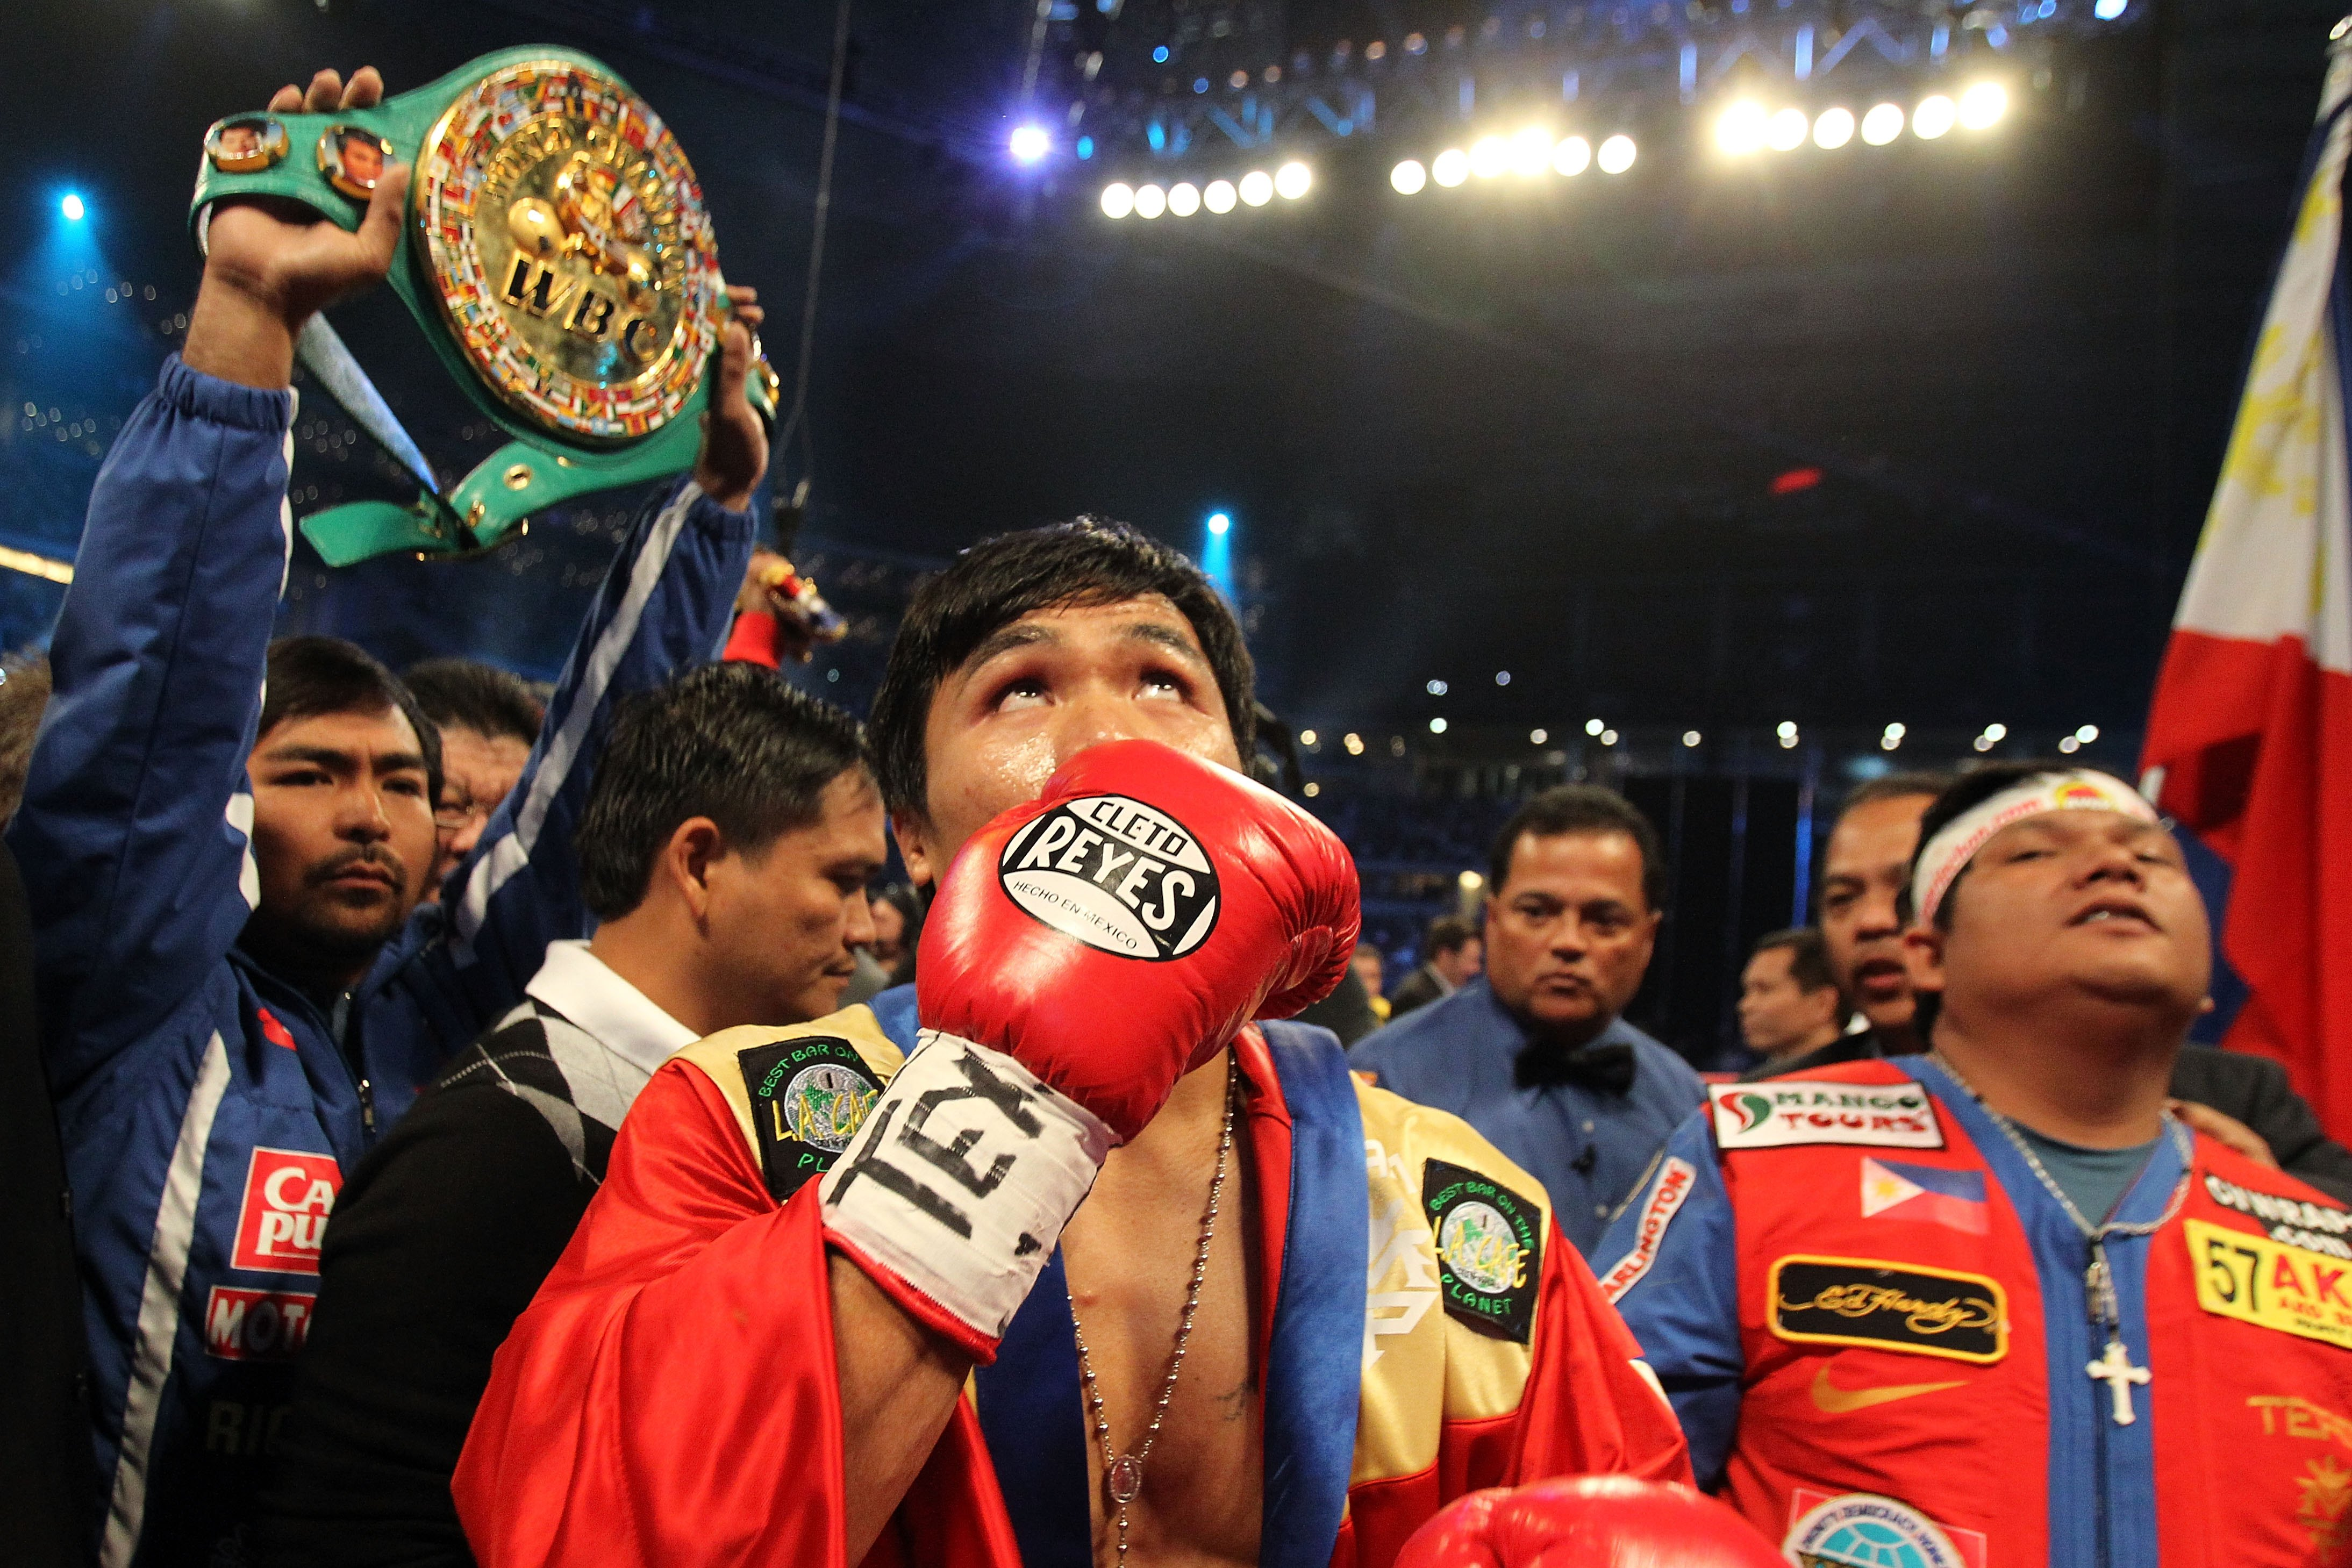 ARLINGTON, TX - MARCH 13:  Manny Pacquiao of the Philippines in the ring before taking on Joshua Clottey of Ghana during the WBO welterweight title fight at Cowboys Stadium on March 13, 2010 in Arlington, Texas.  (Photo by Jed Jacobsohn/Getty Images)